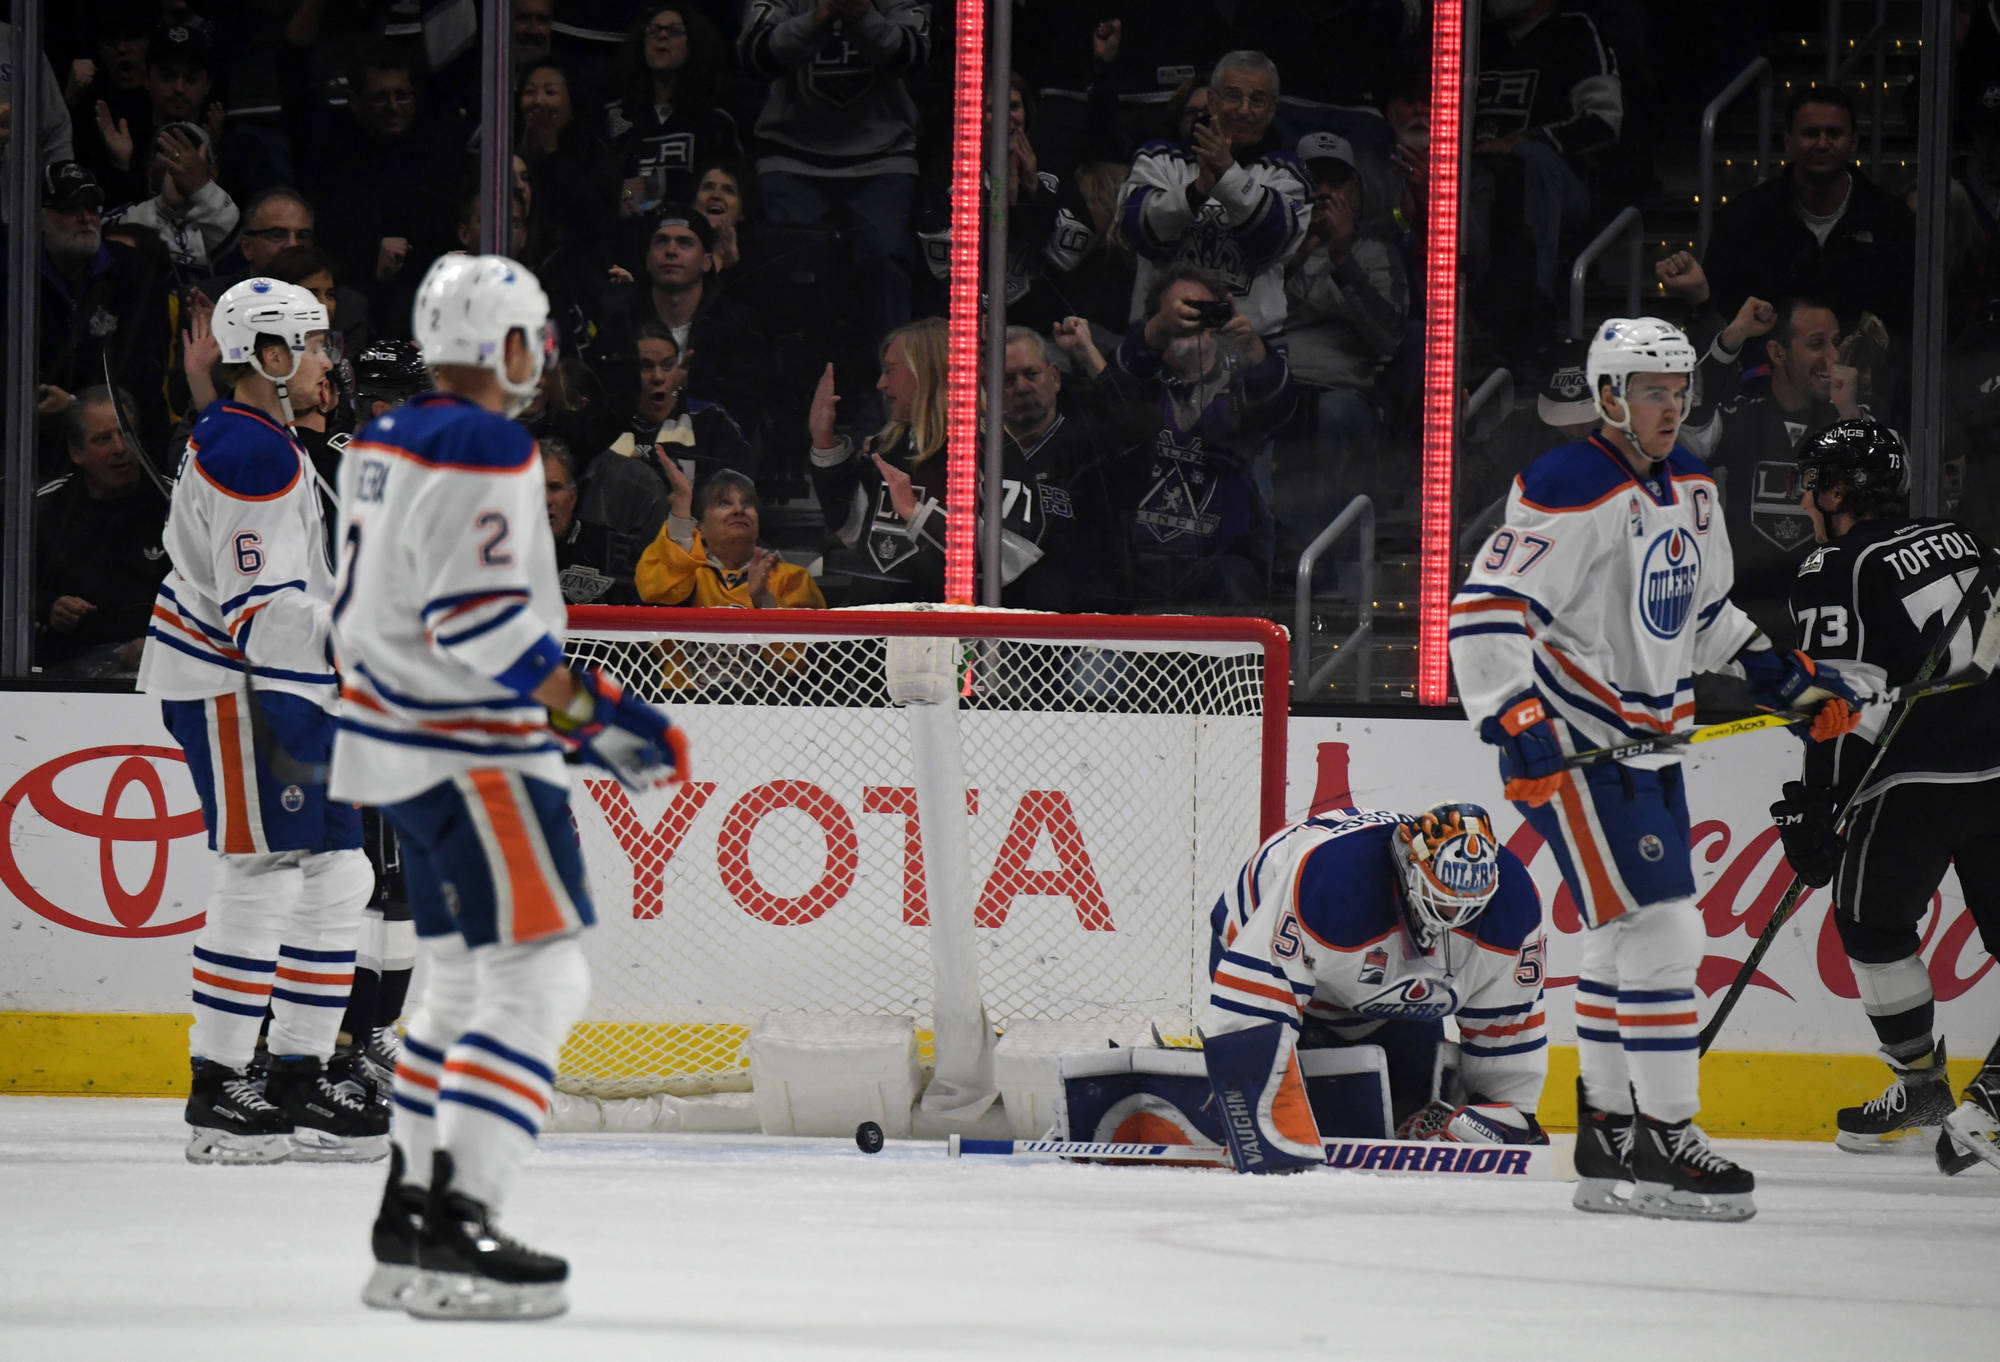 What's next for both of Alberta's teams?